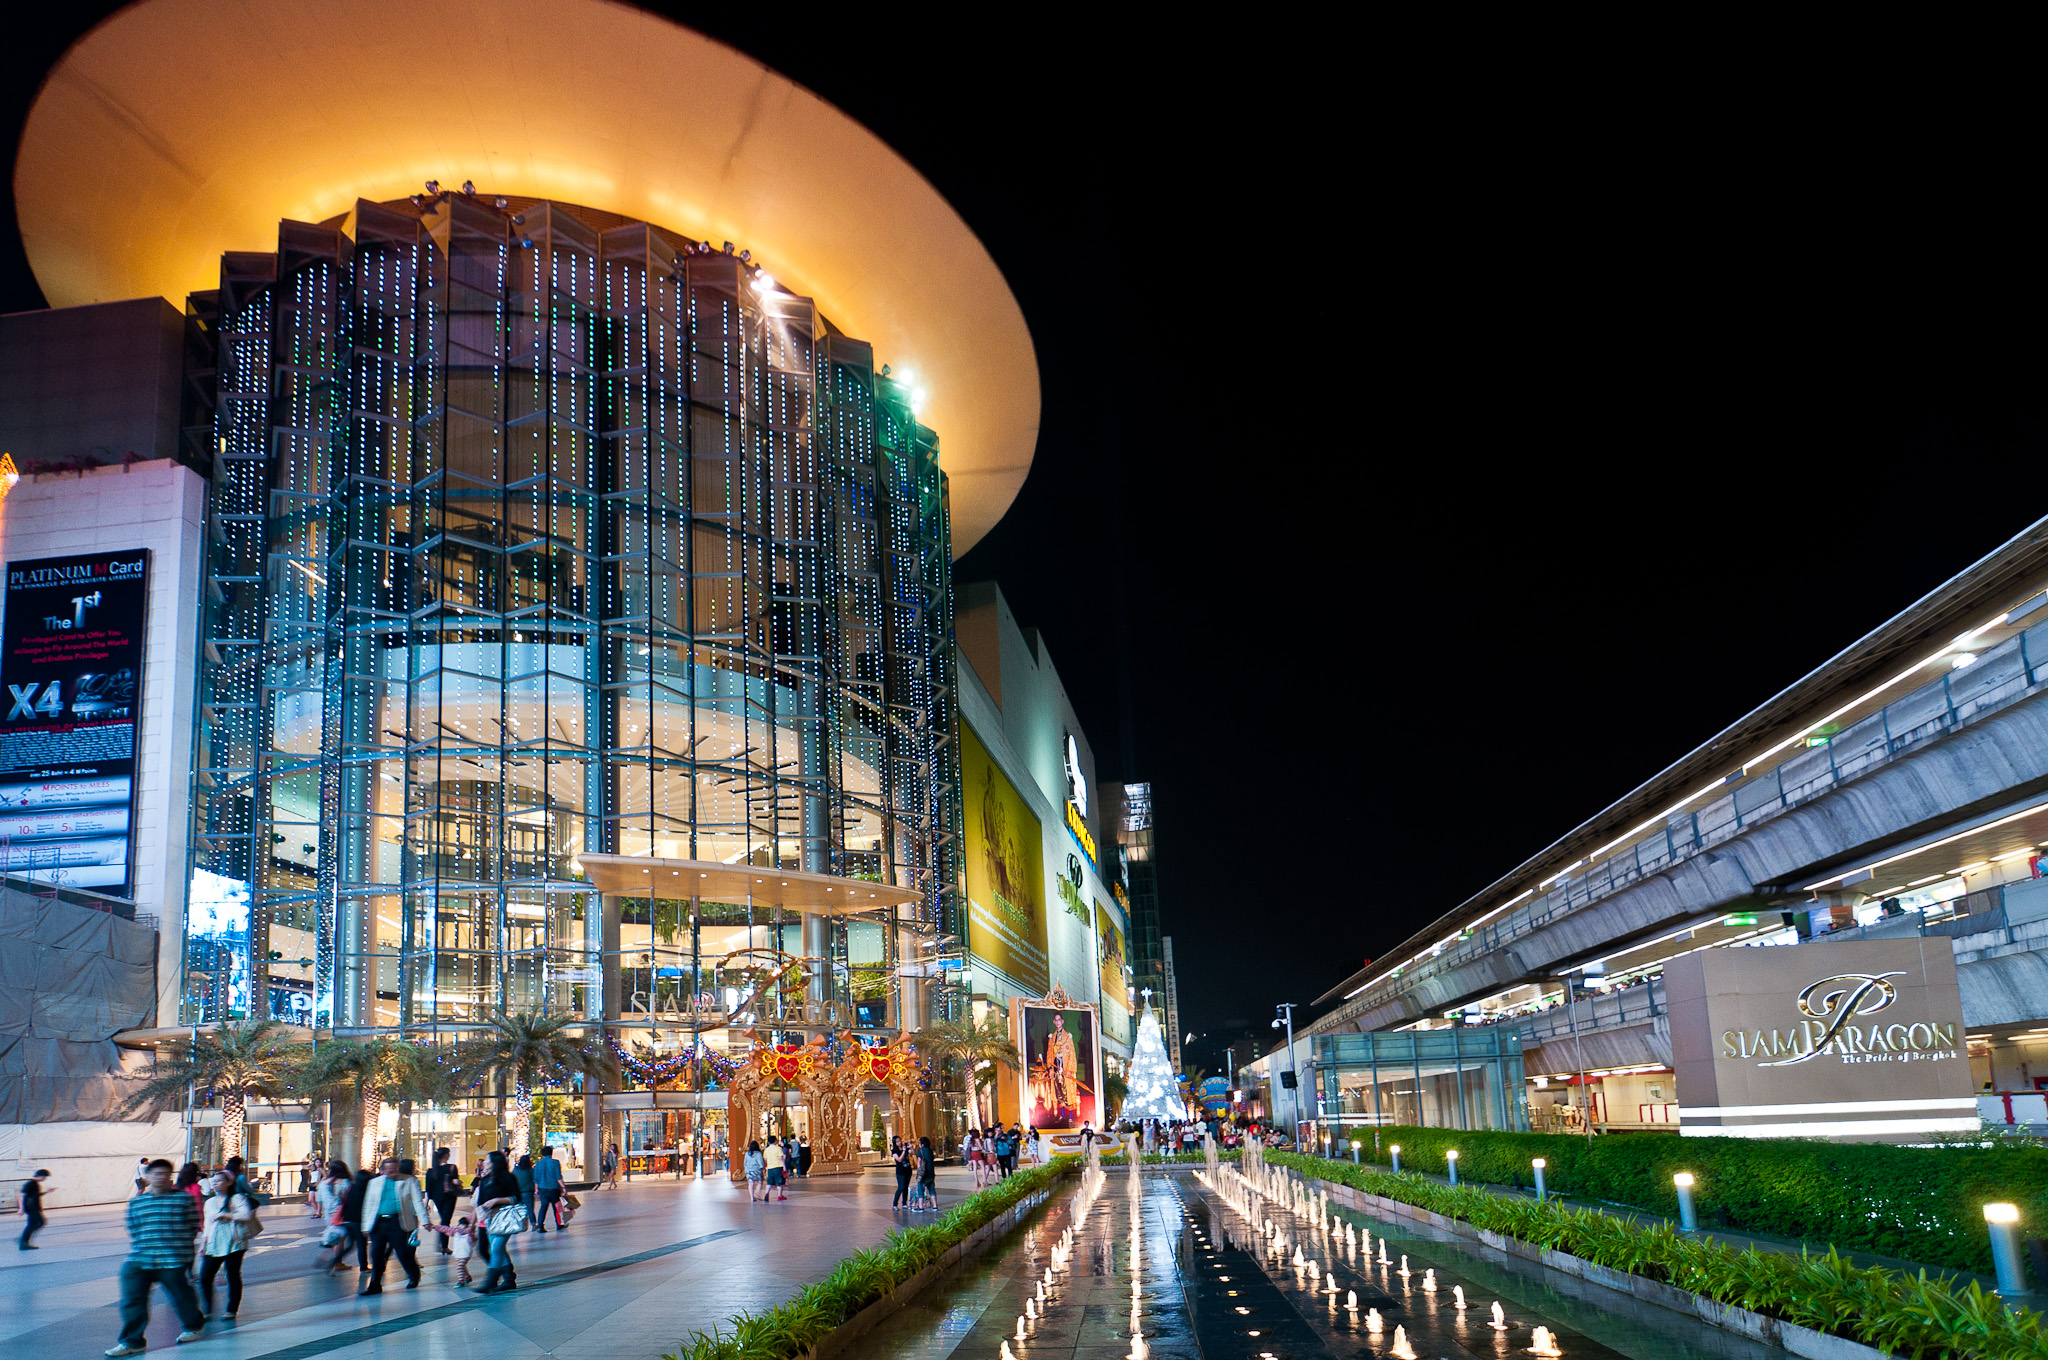 Siam Paragon shopping cente